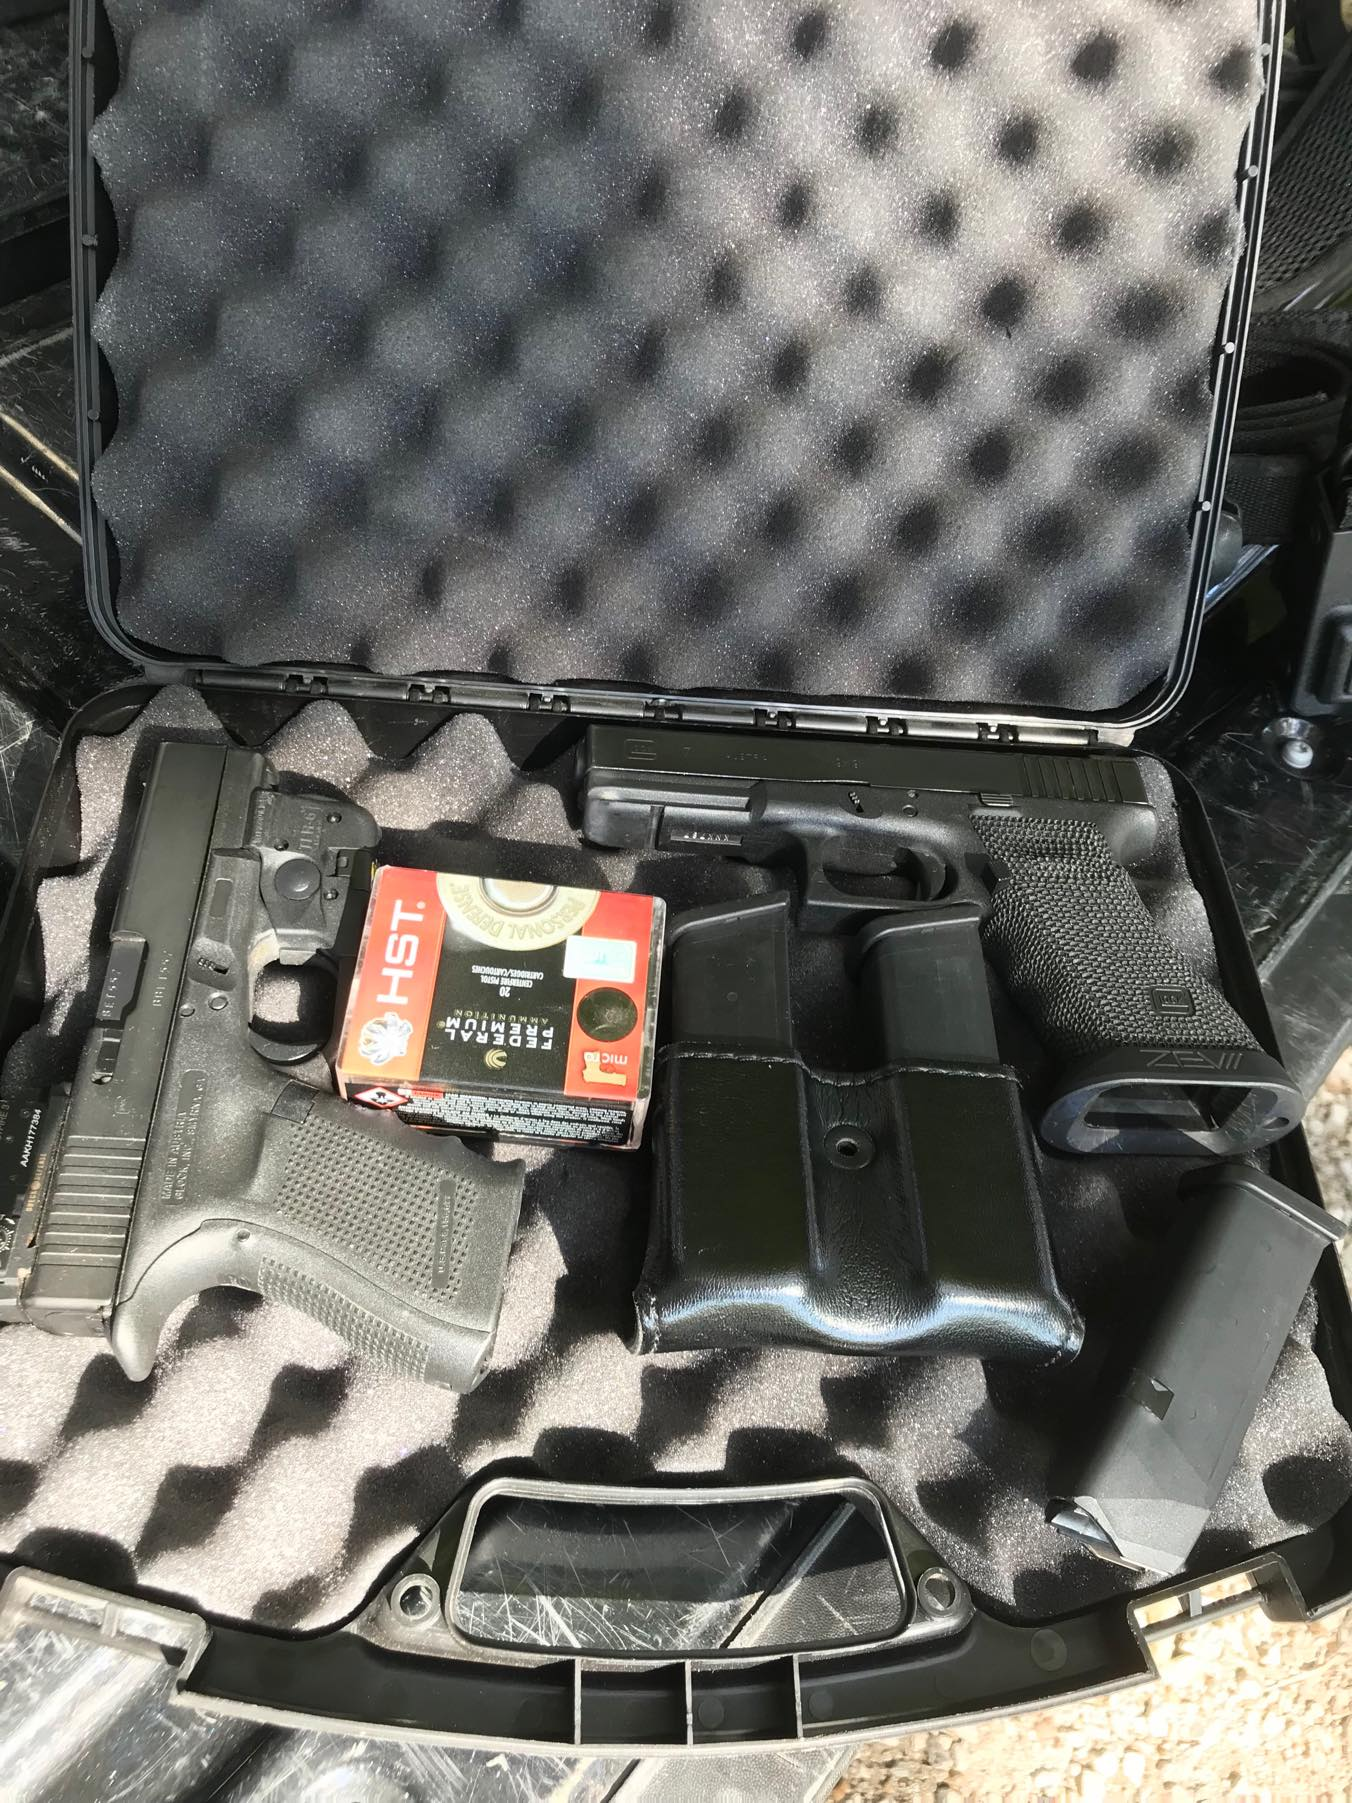 Author's firearms before flight